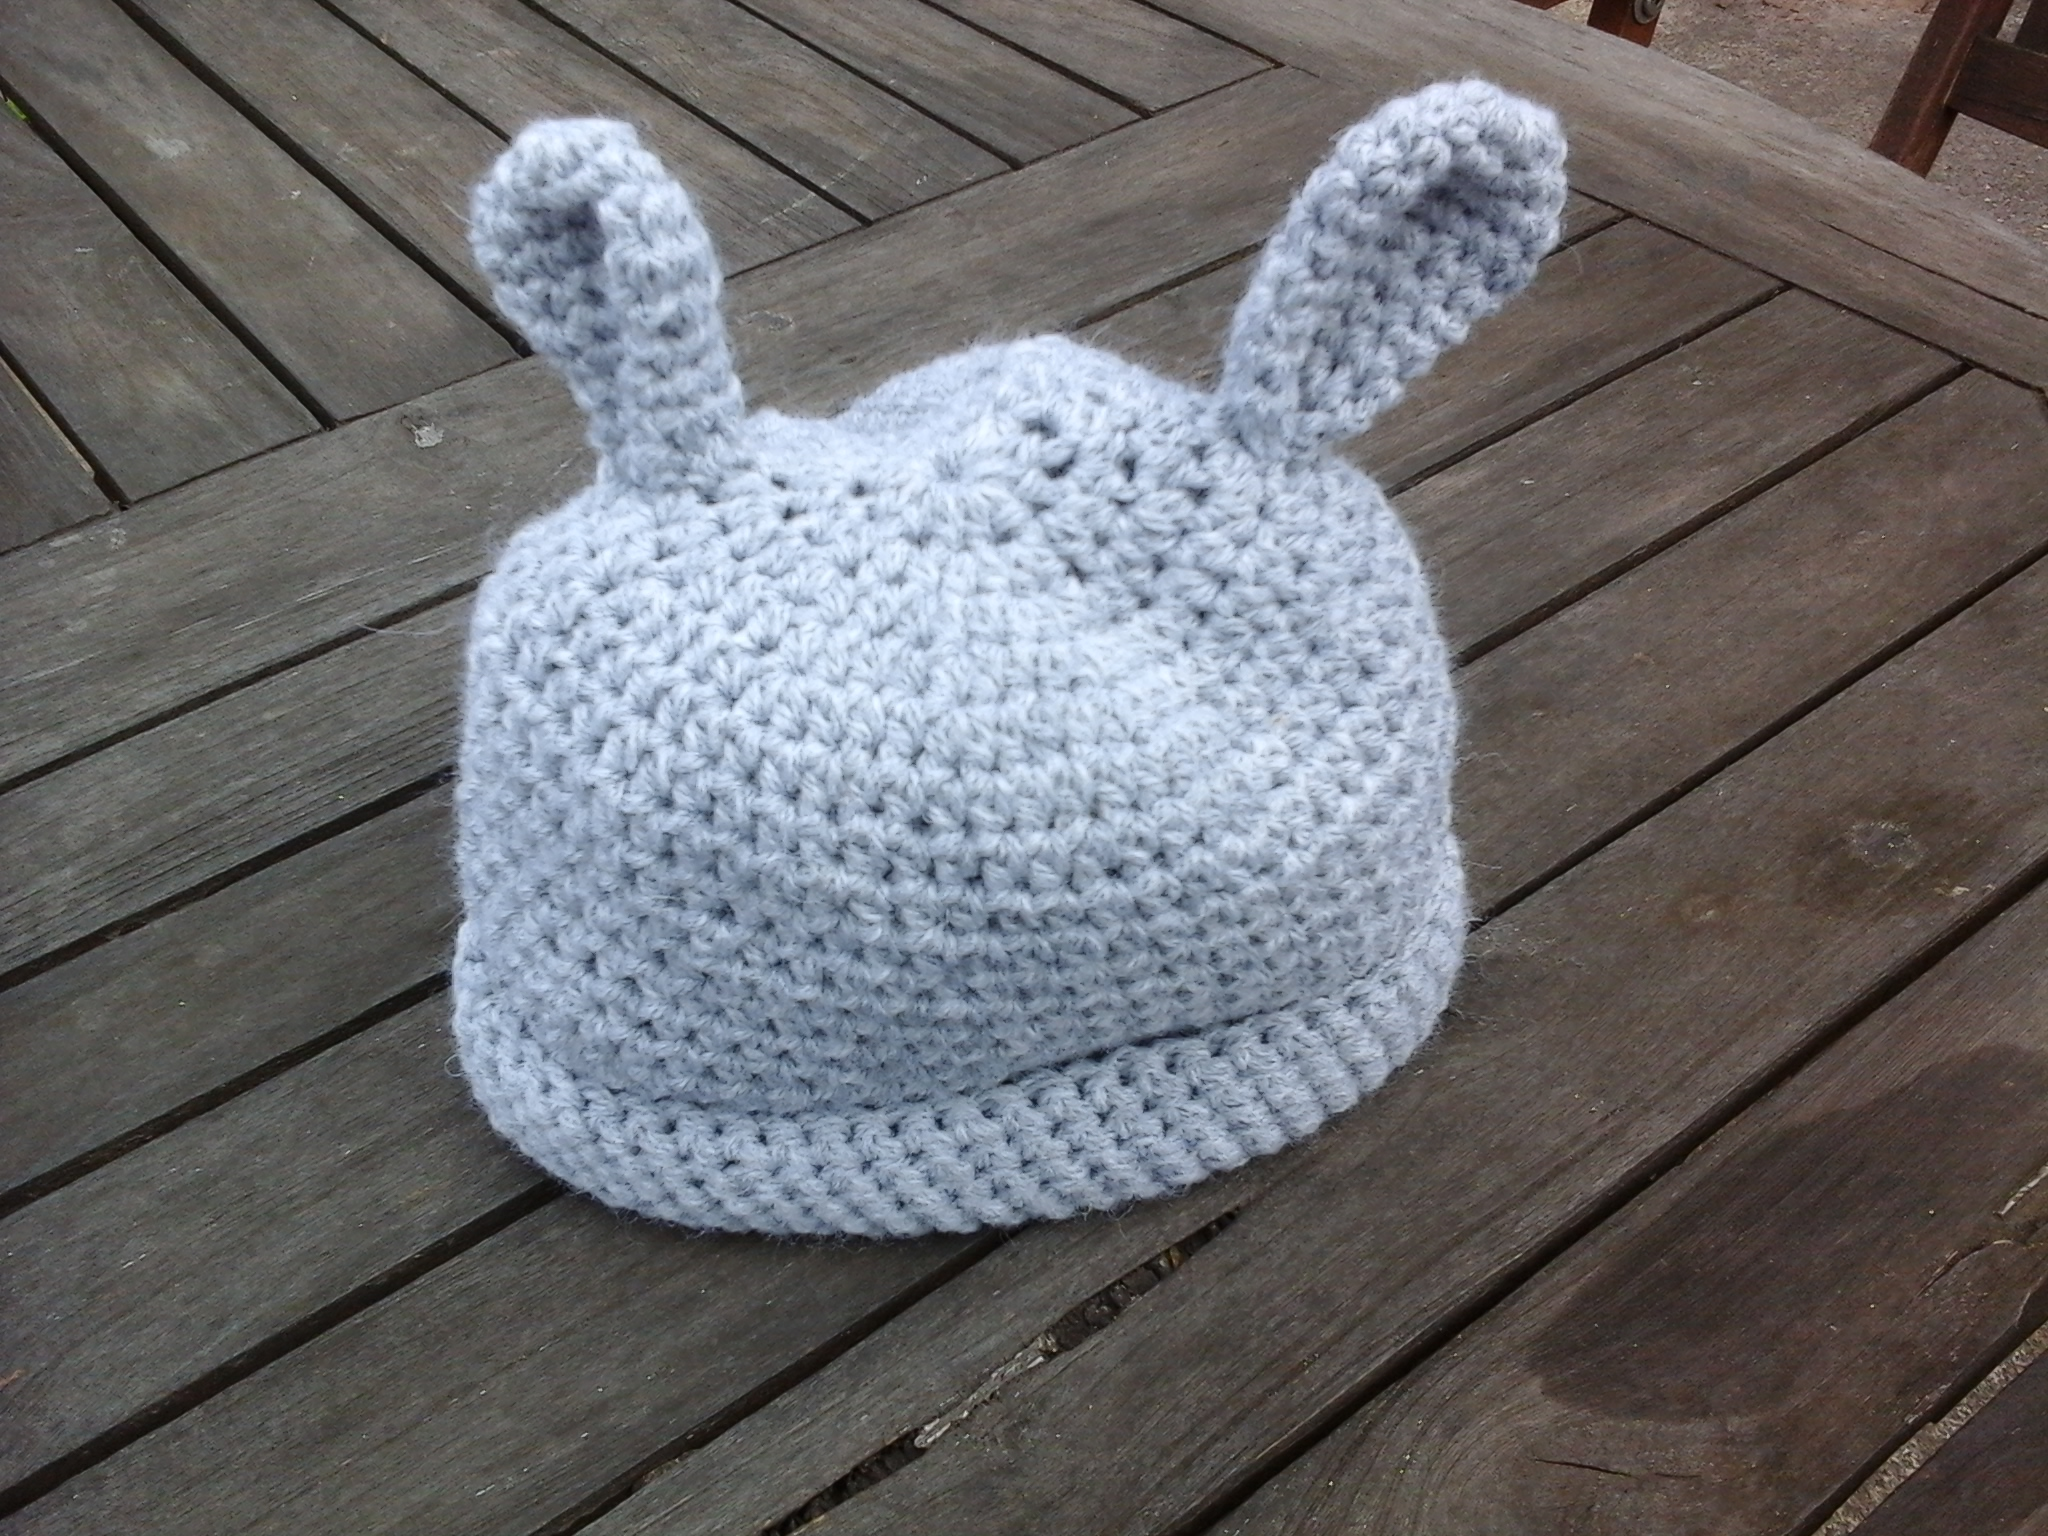 Crochet Baby Hat With Bill Pattern : crochet baby hat pattern Tracey Todhunter